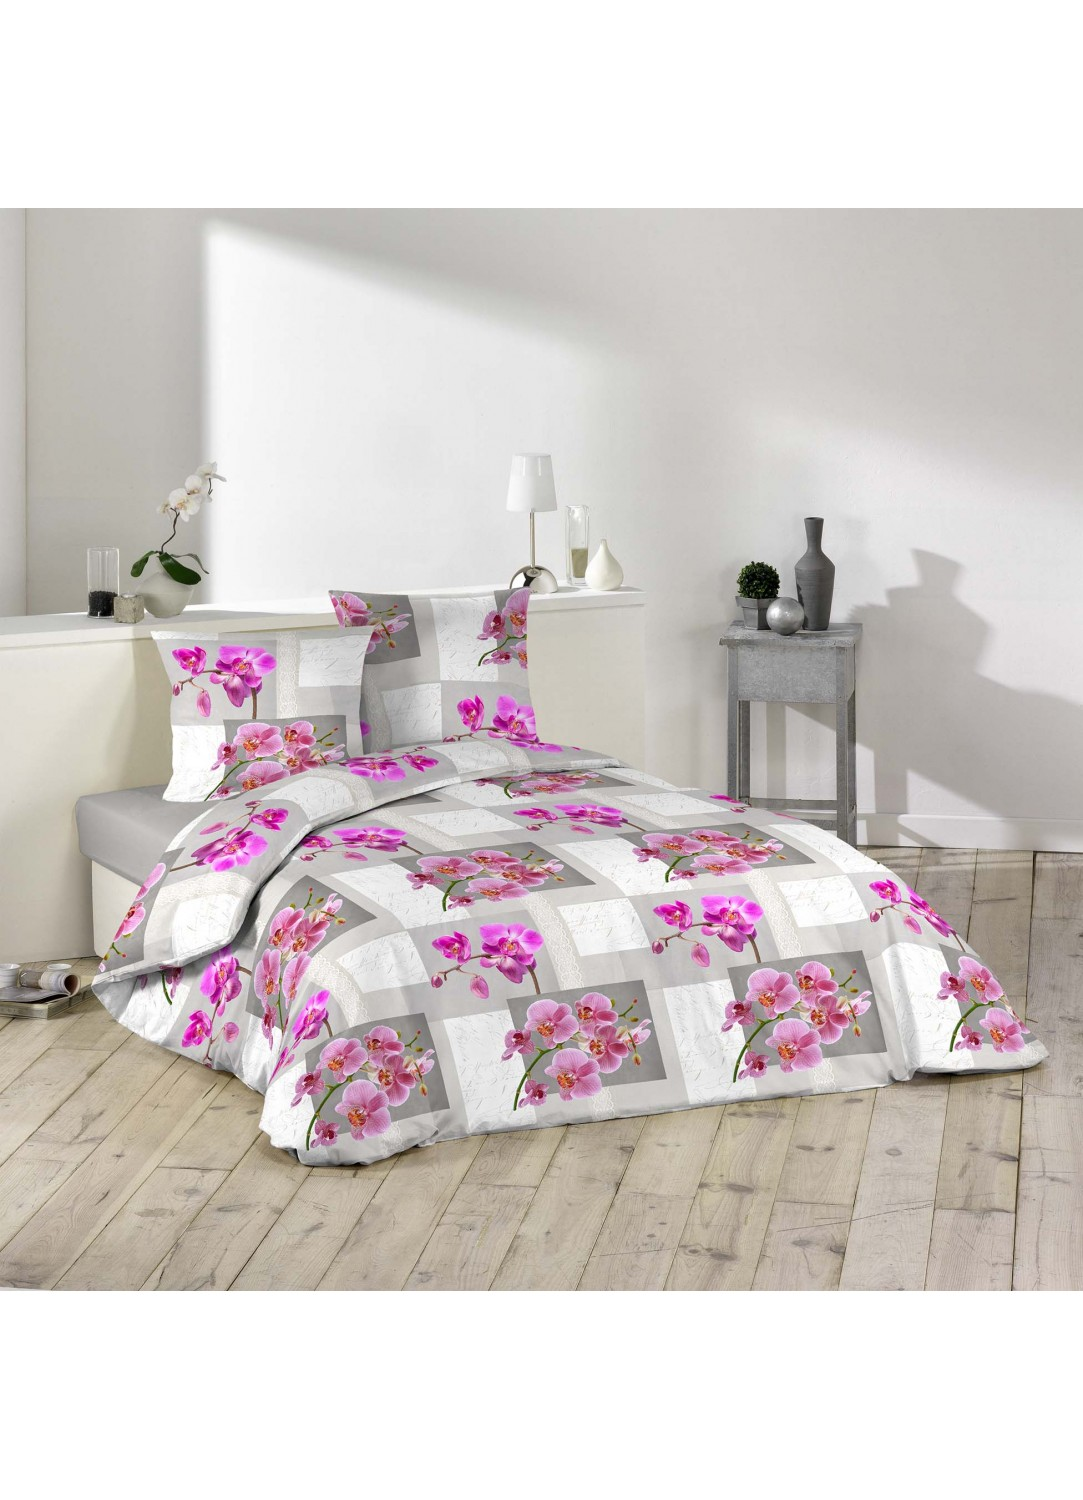 parure de lit imprim e orchid es multicolors homemaison vente en ligne parures de lit. Black Bedroom Furniture Sets. Home Design Ideas